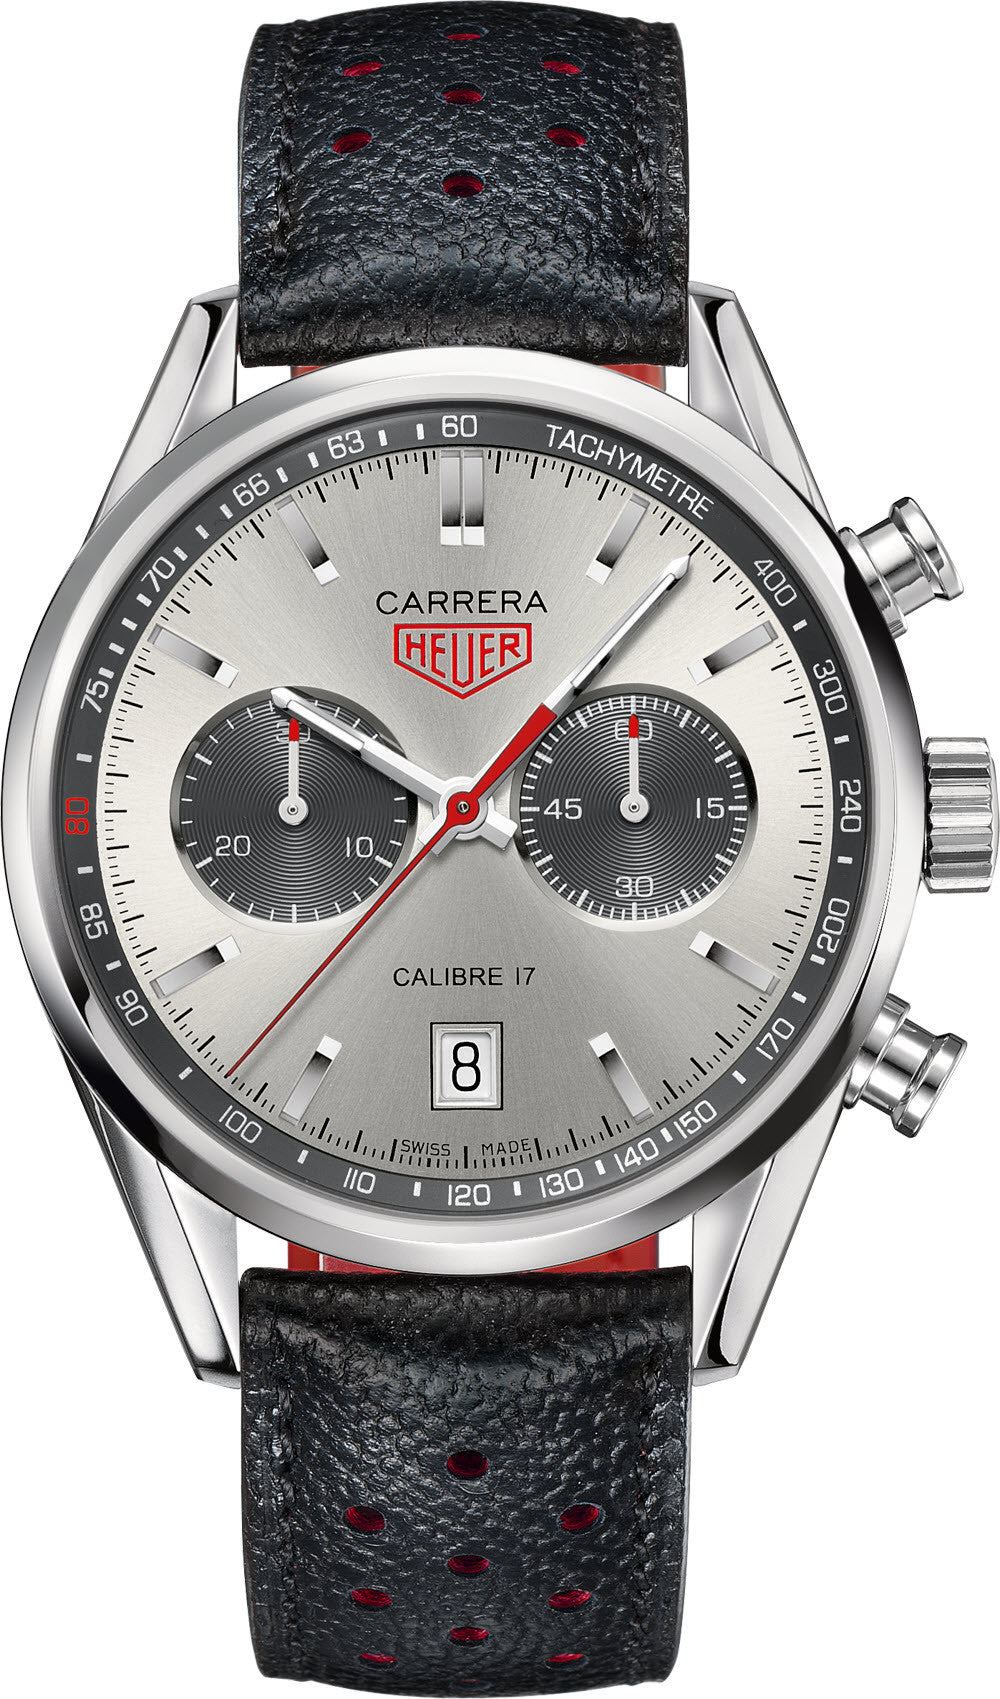 TAG Heuer Watch Carrera Jack Heuer Limited Edition D